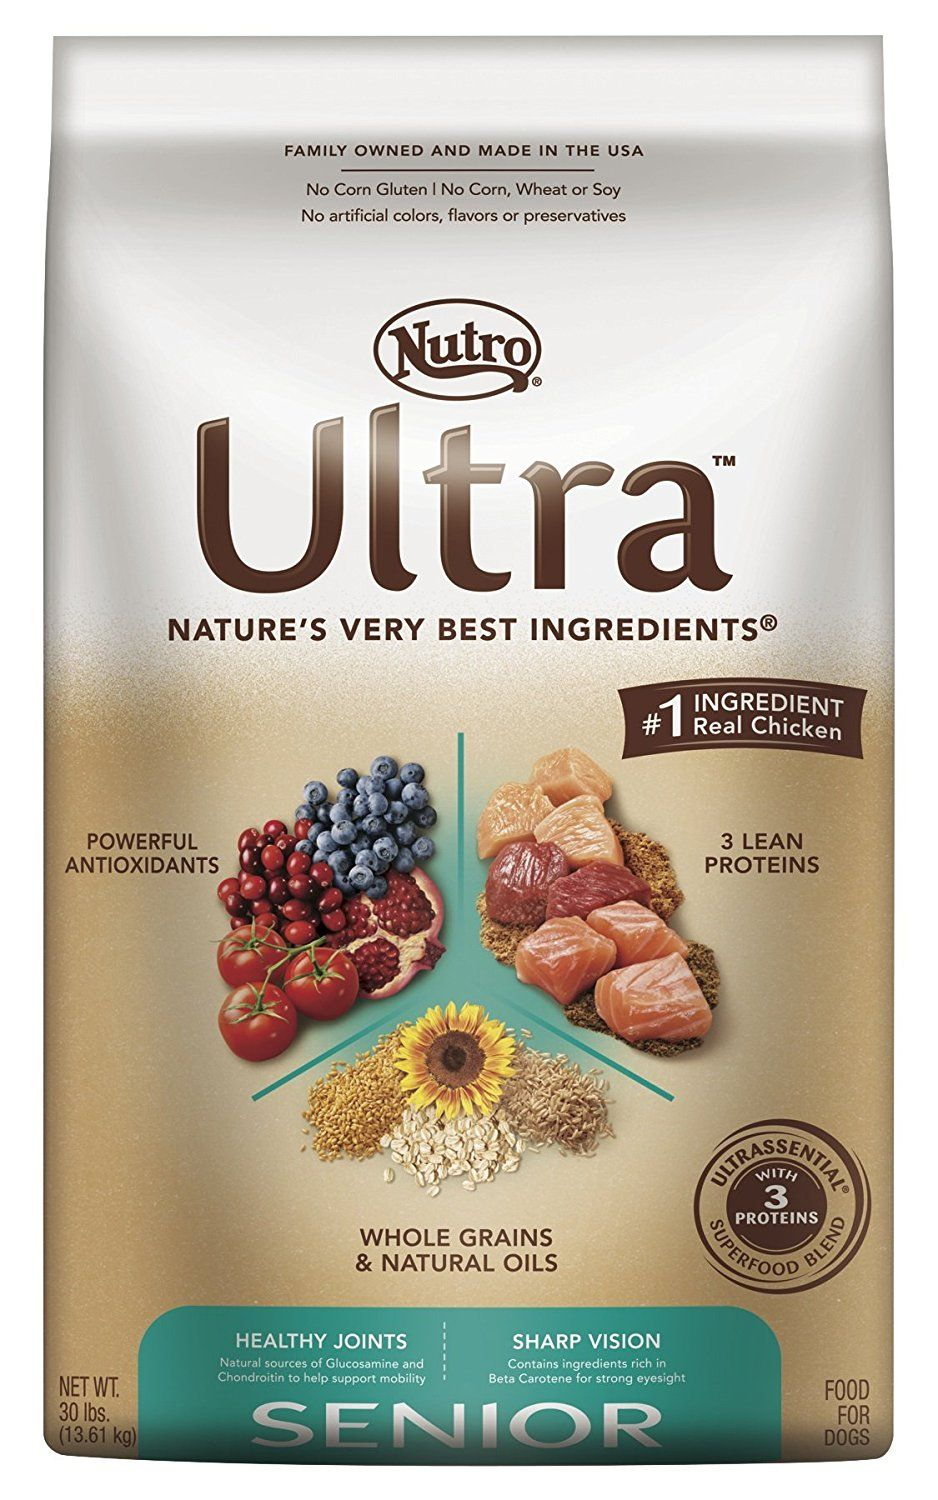 Nutro Ultra Senior Dry Dog Food Trust Me This Is Great Click